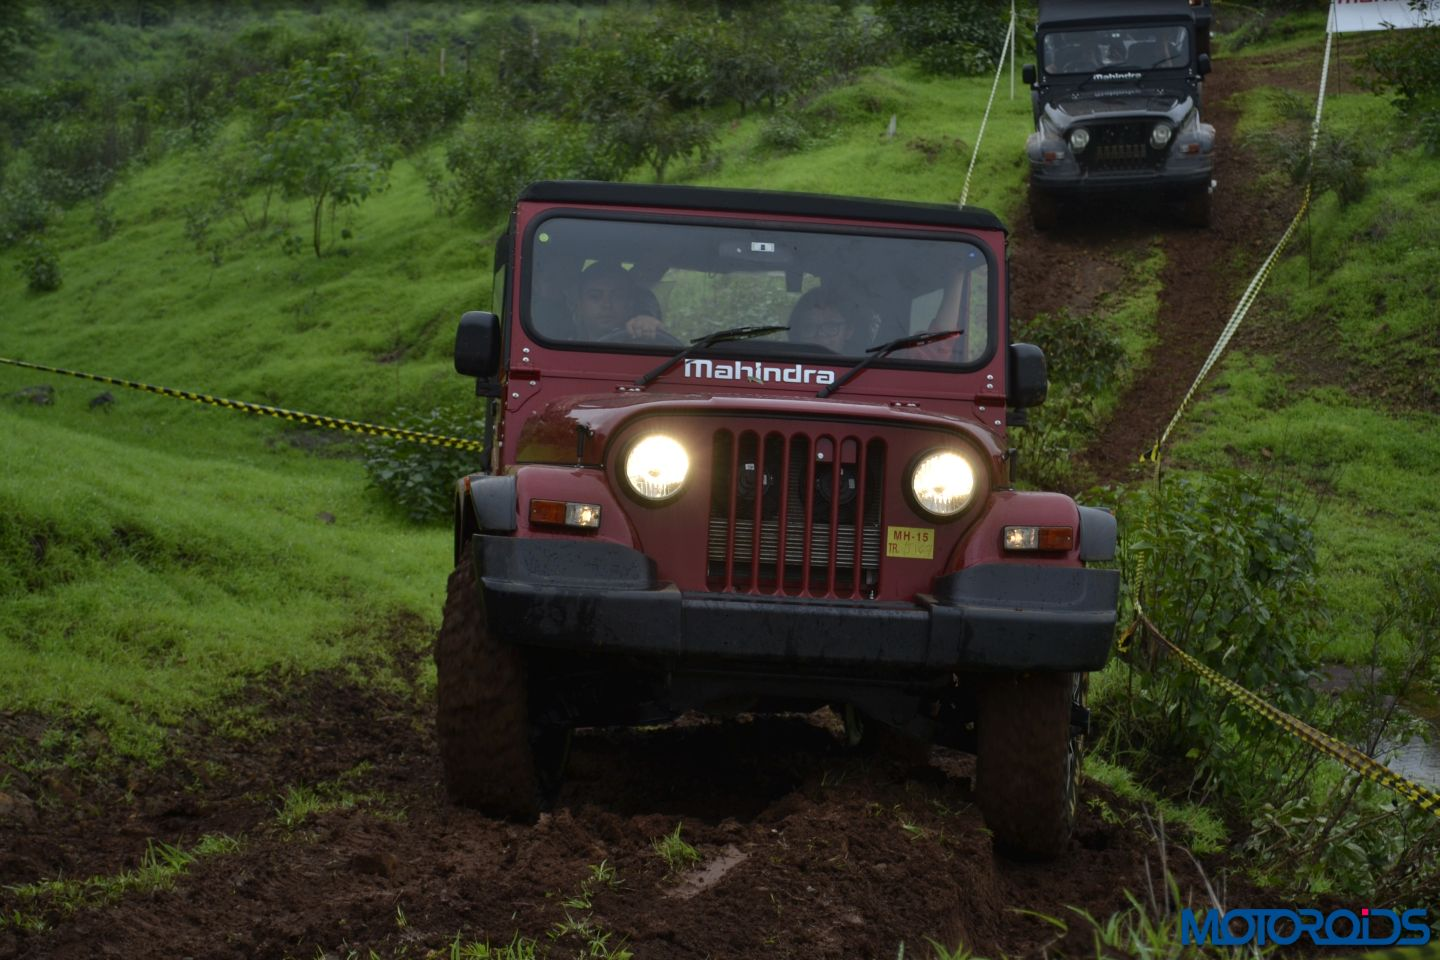 2015 Mahindra Thar Crde First Drive Review Iron Boar